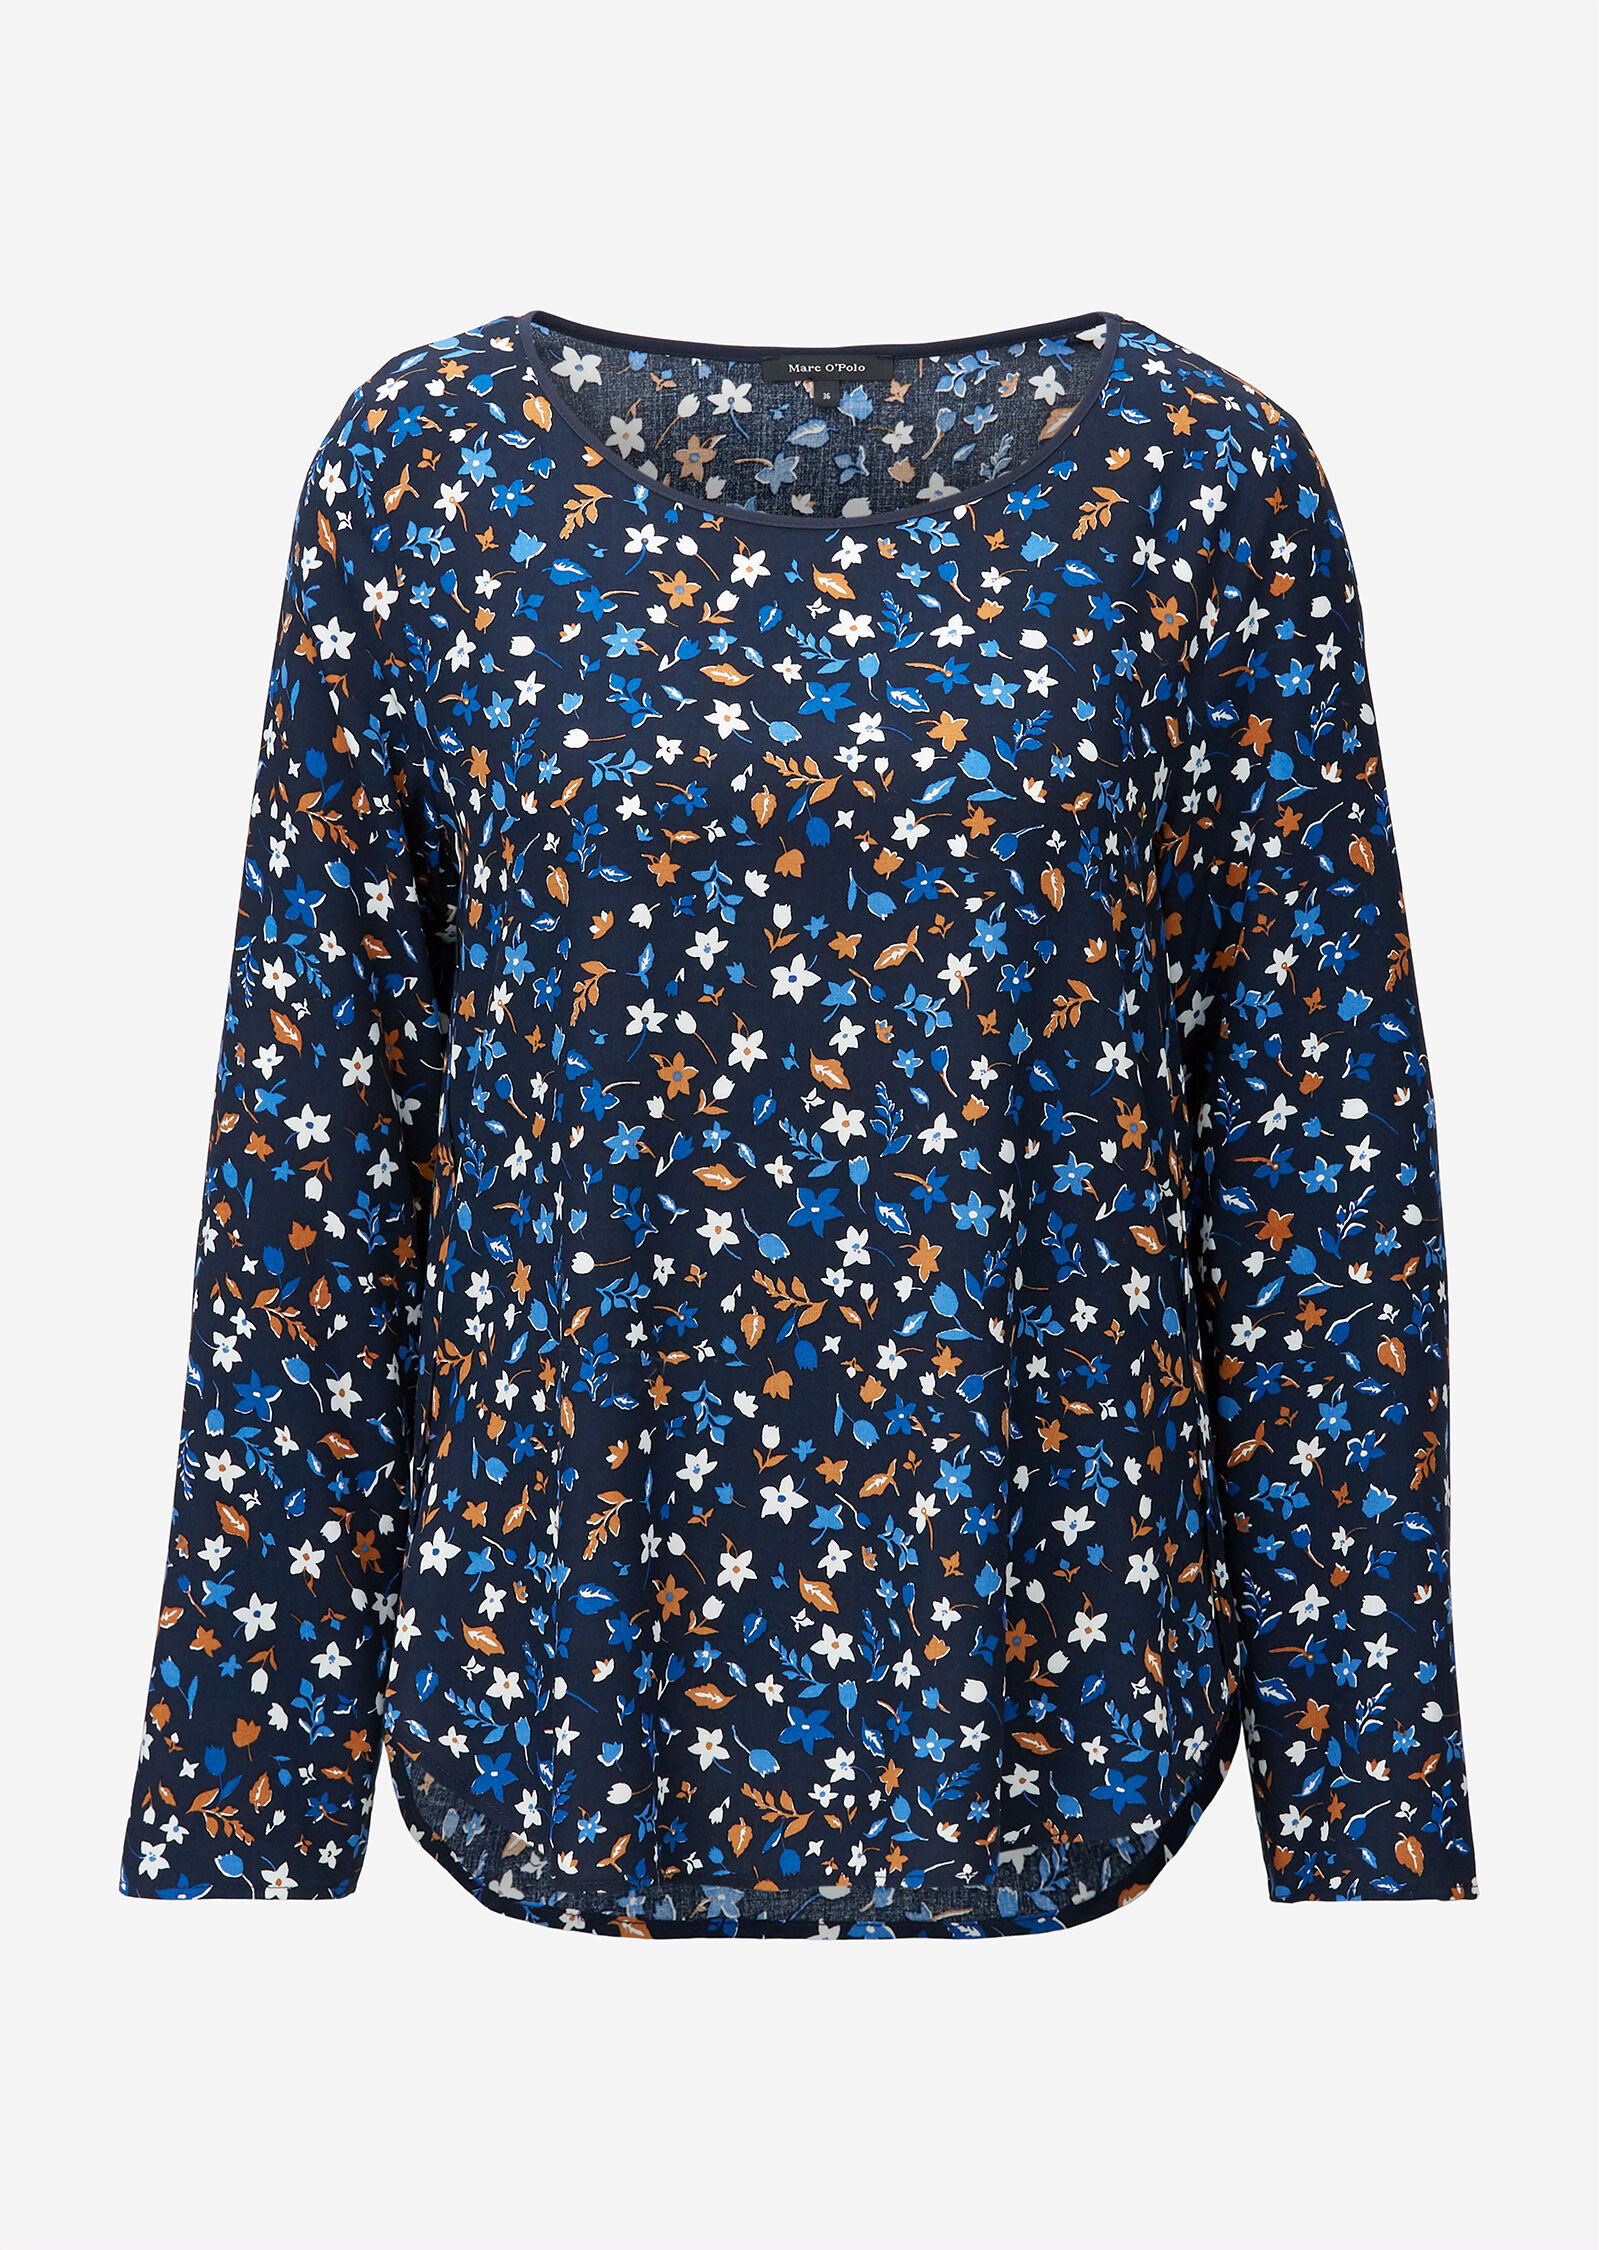 Blouse, crew neck, long sleeved, sp